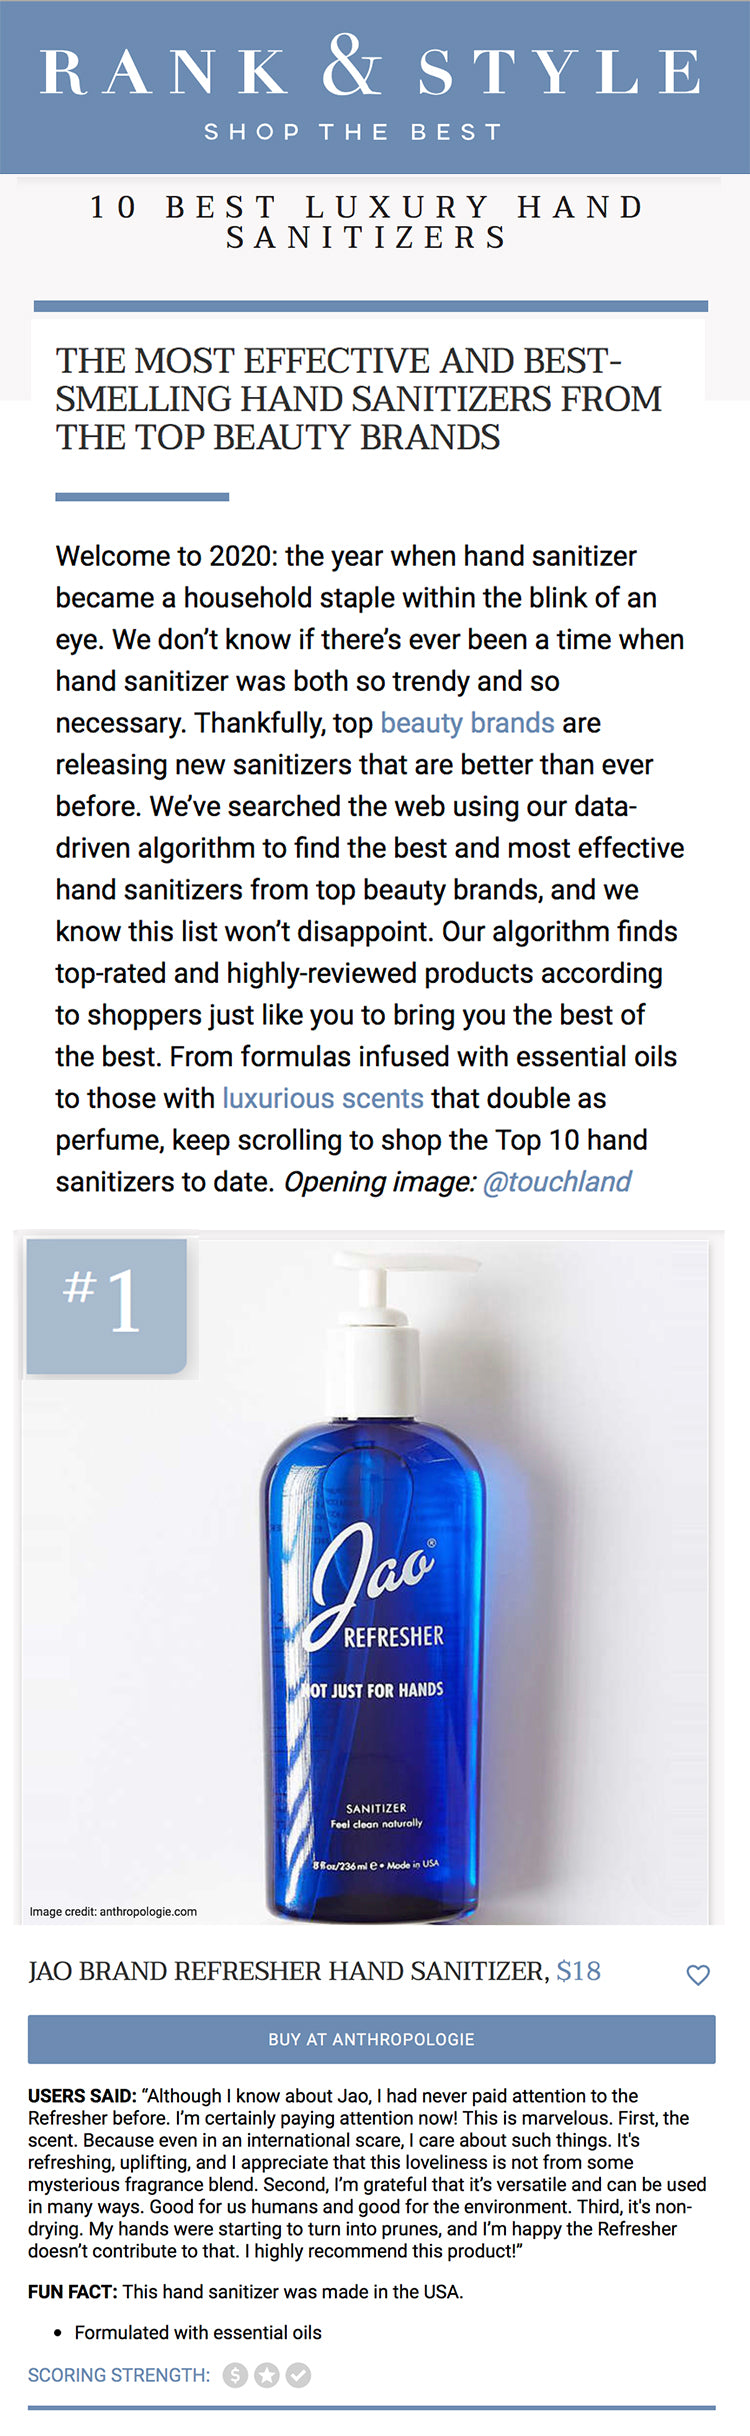 Rank & Style: Jao Refresher #1  LUXURY HAND SANITIZERS